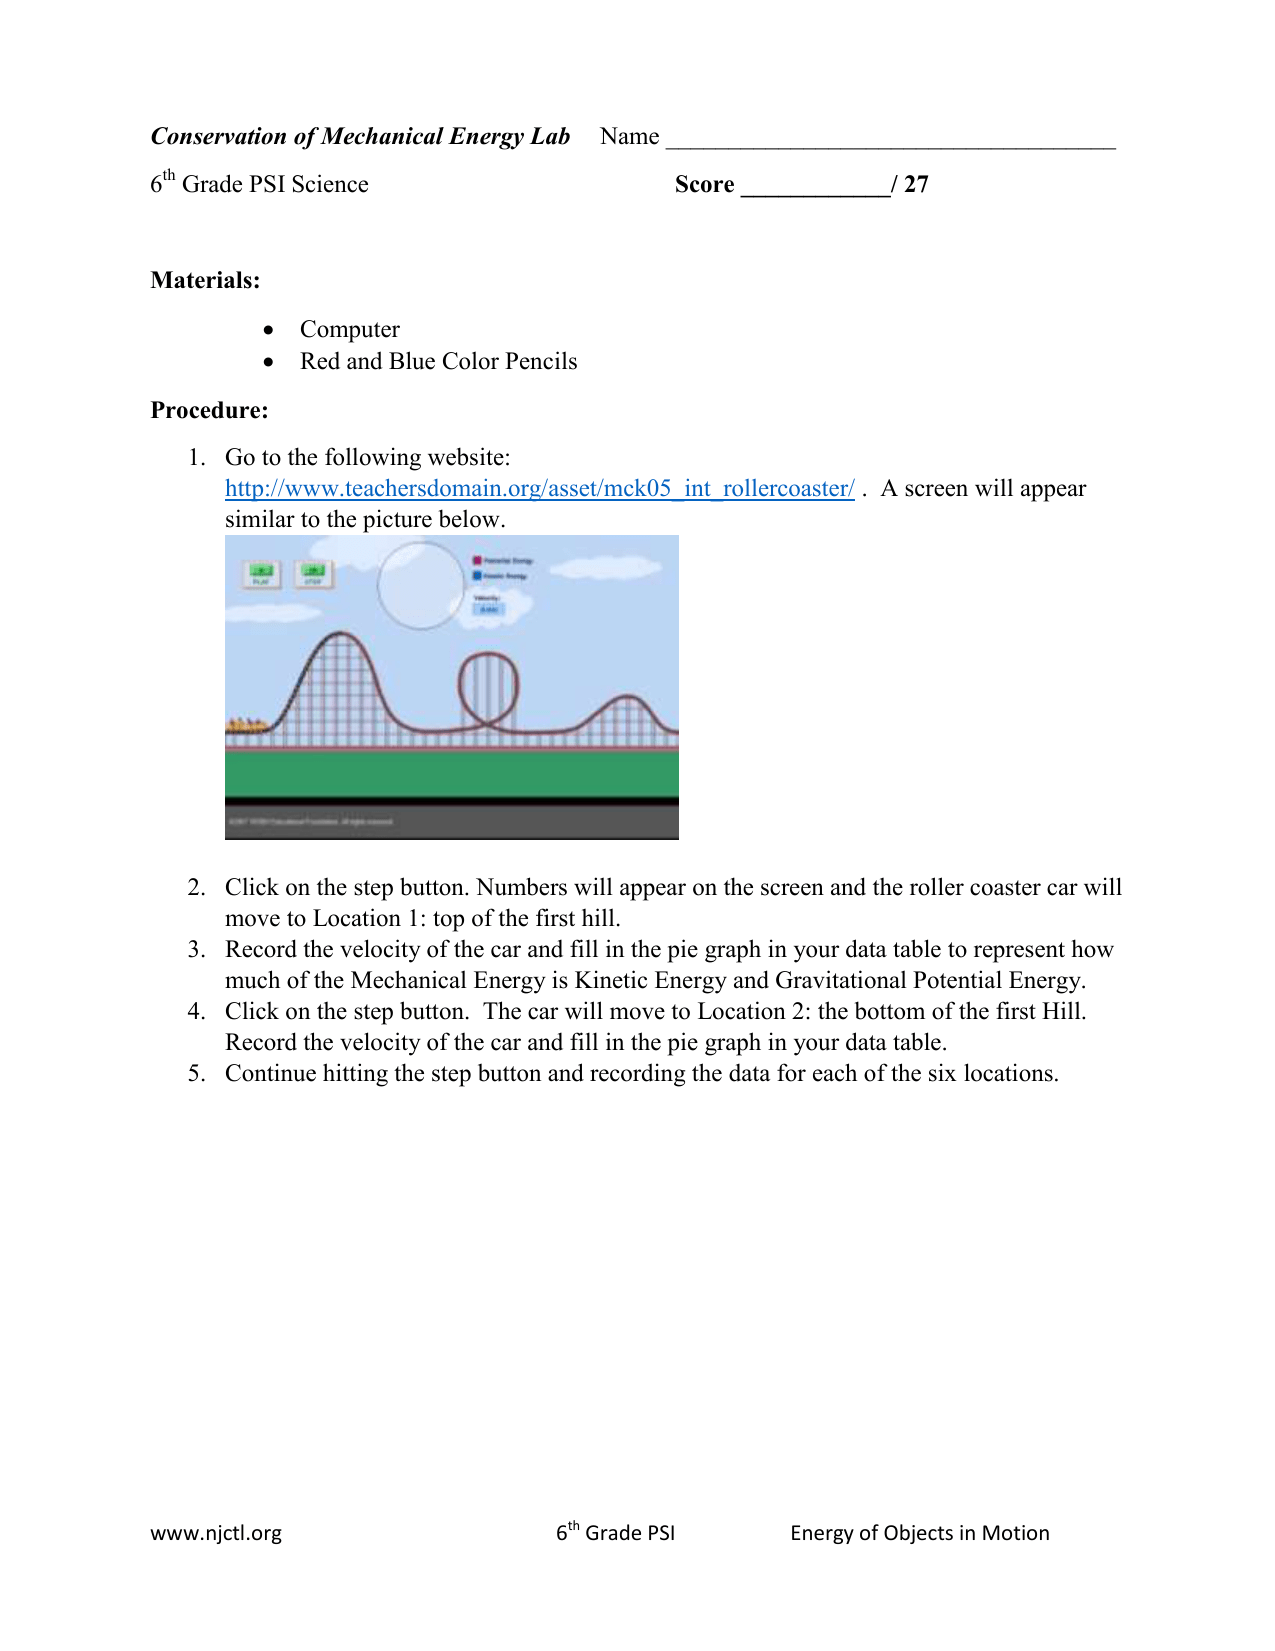 hight resolution of Conservation of Mechanical Energy Lab Name 6 Grade PSI Science